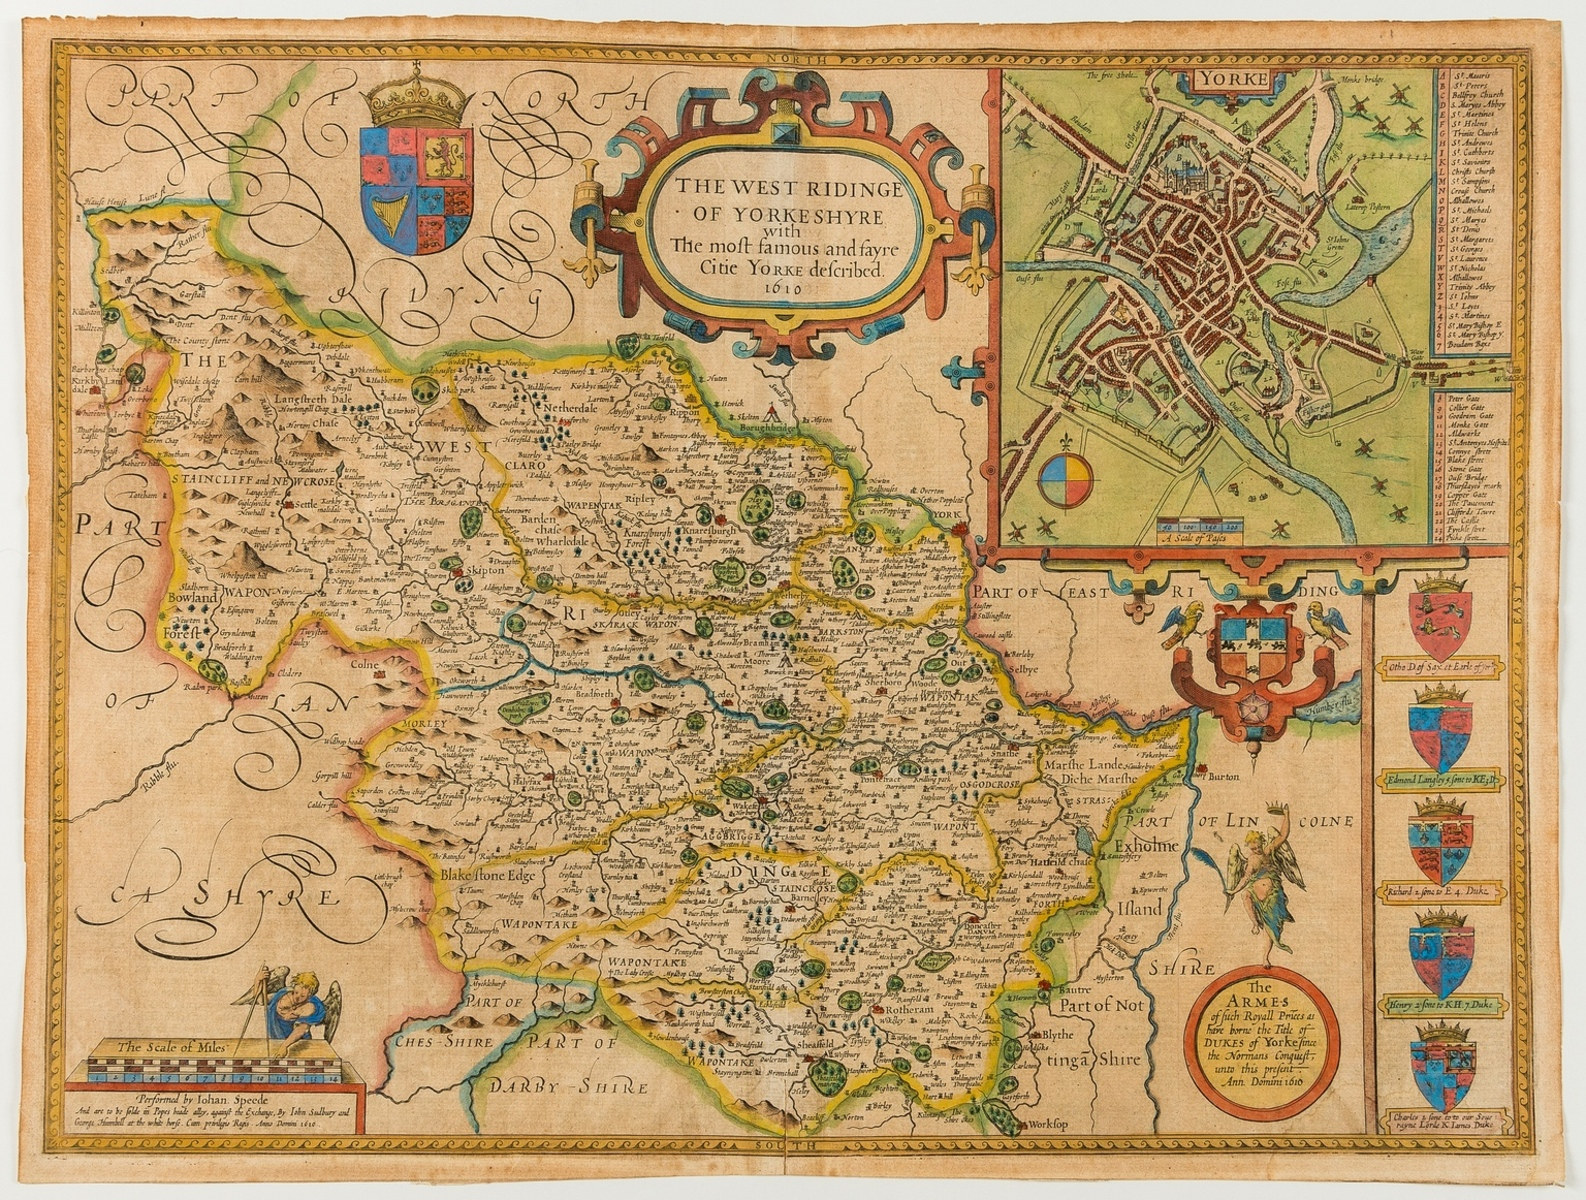 Yorskhire.- Speed (John) York Shire [and] The North and East Ridins of Yorkshire [and] The West …